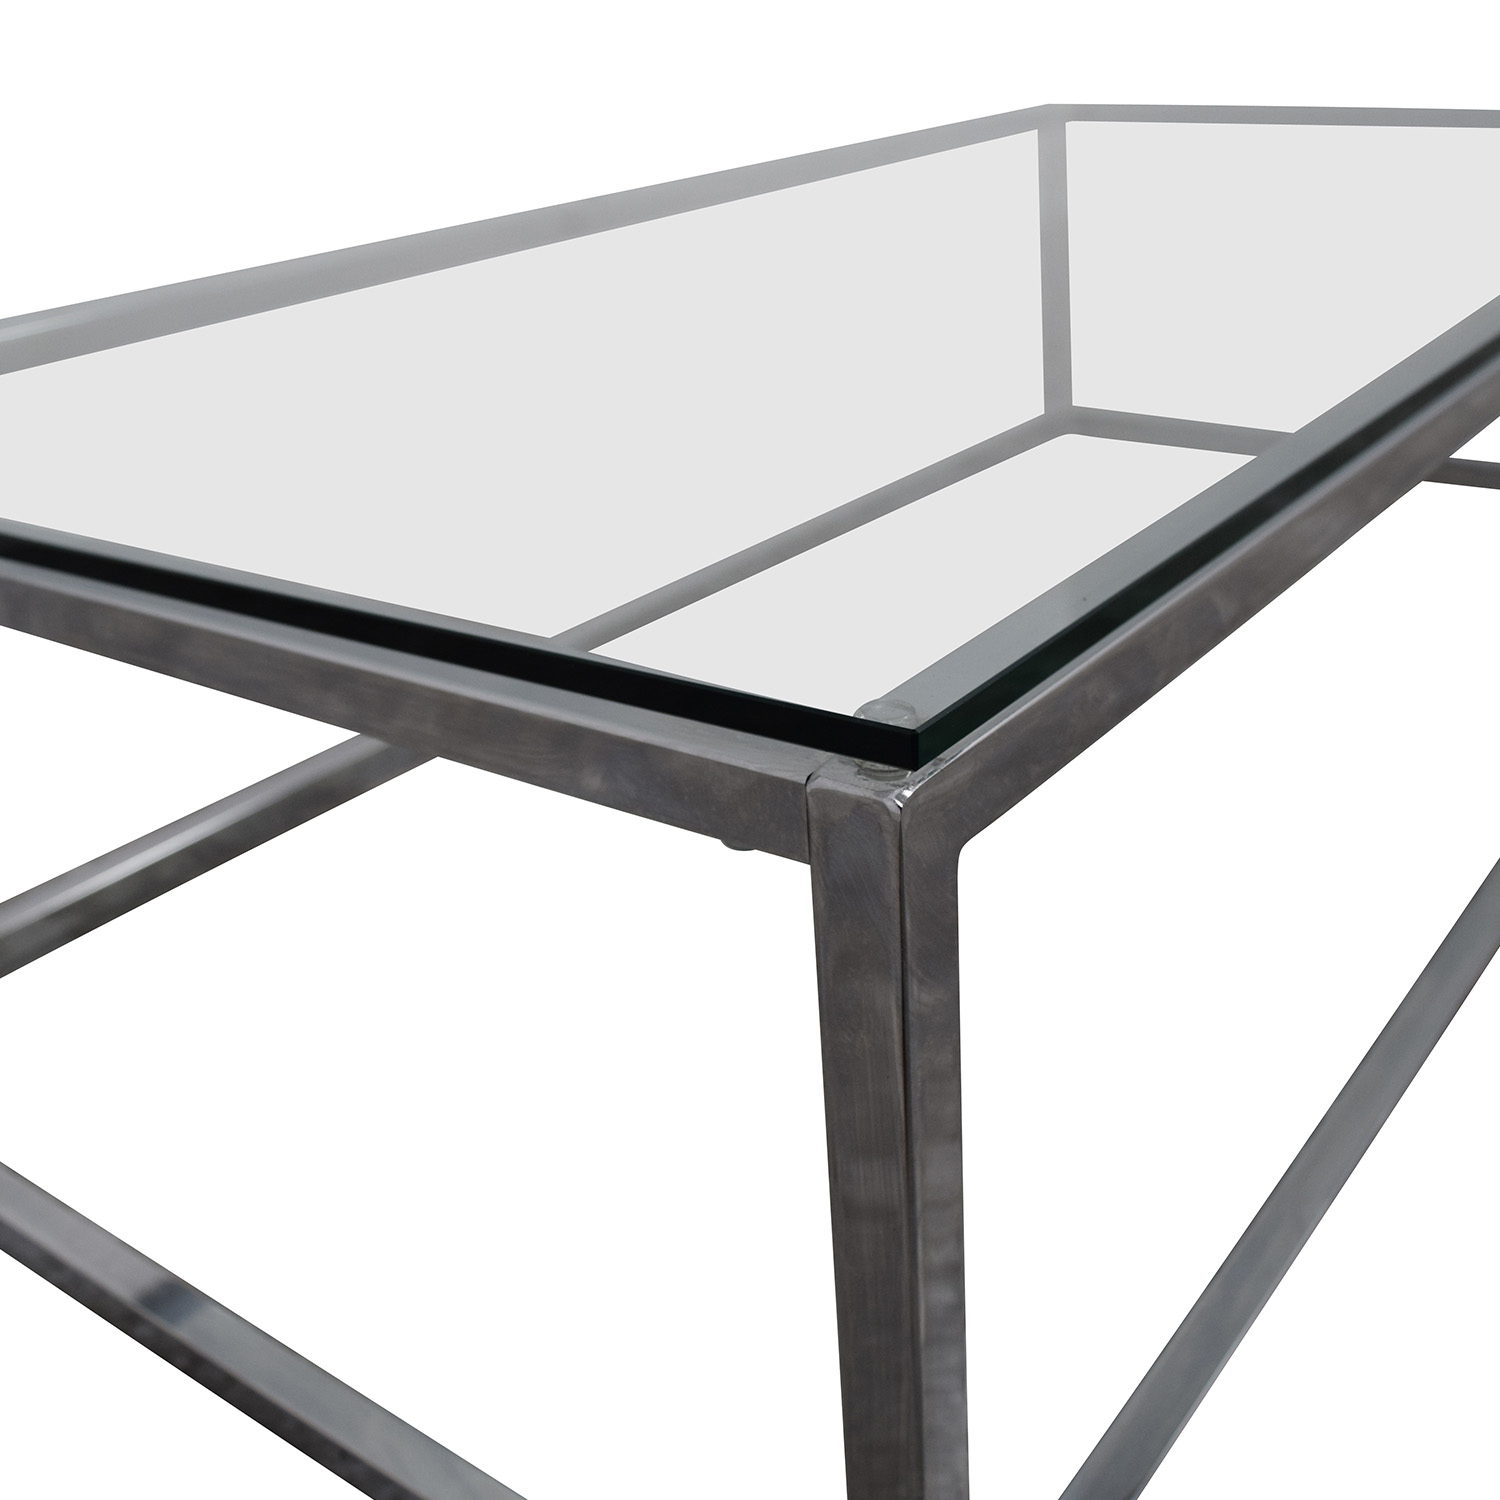 62% OFF CB2 CB2 Smart Chrome and Glass Coffee Table Tables